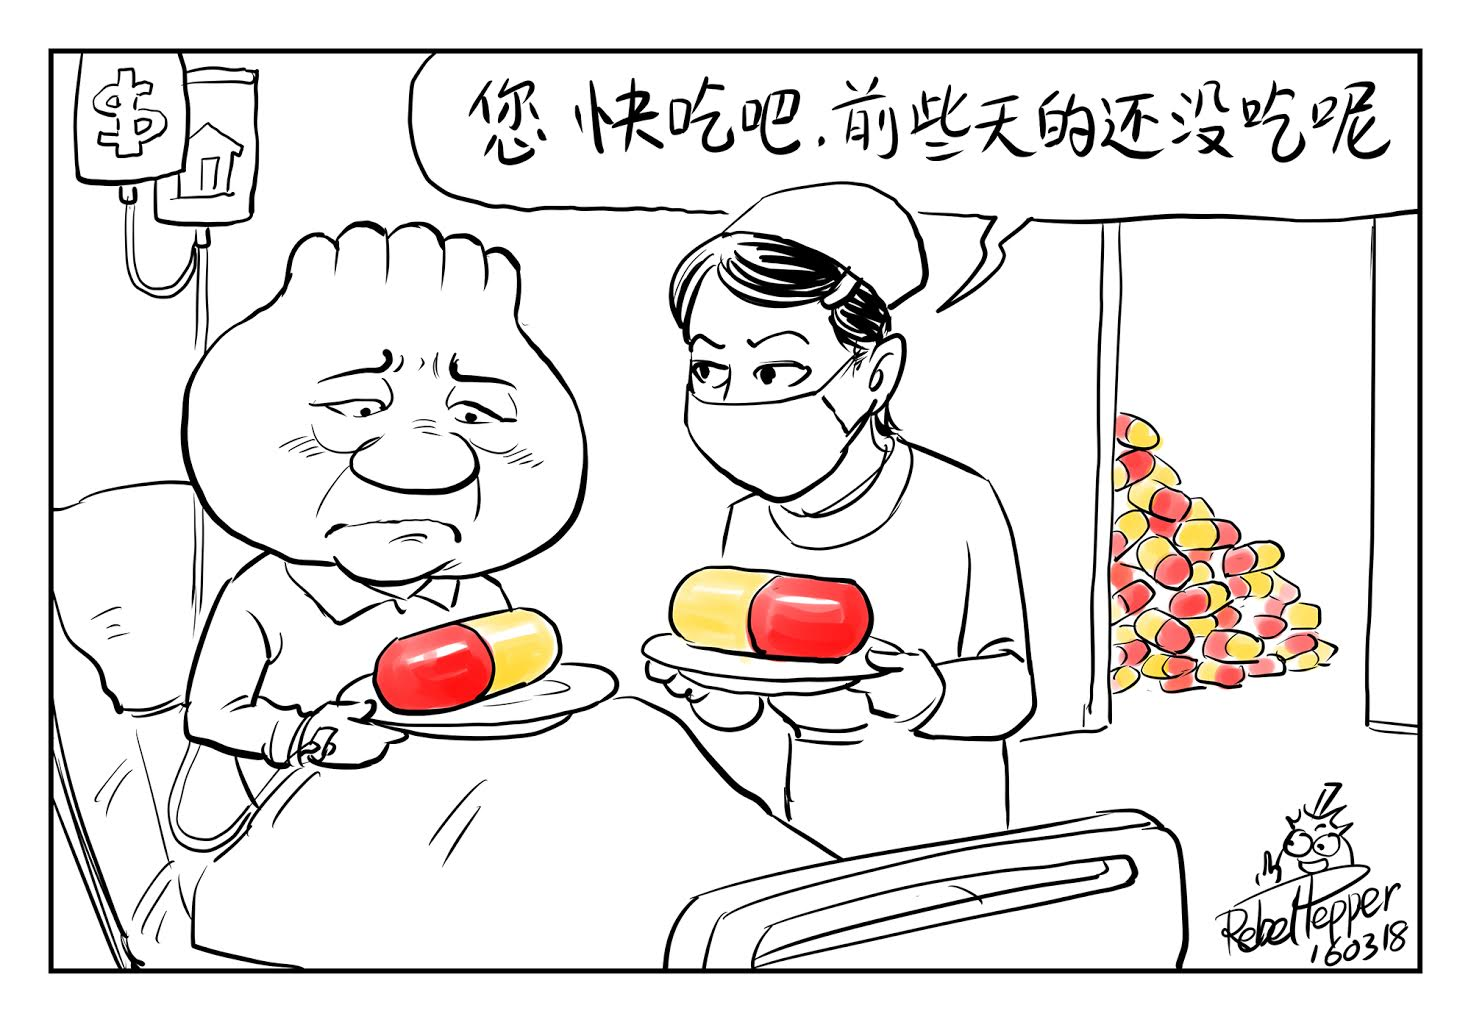 Rebel Pepper: President Xi, Take Your Meds